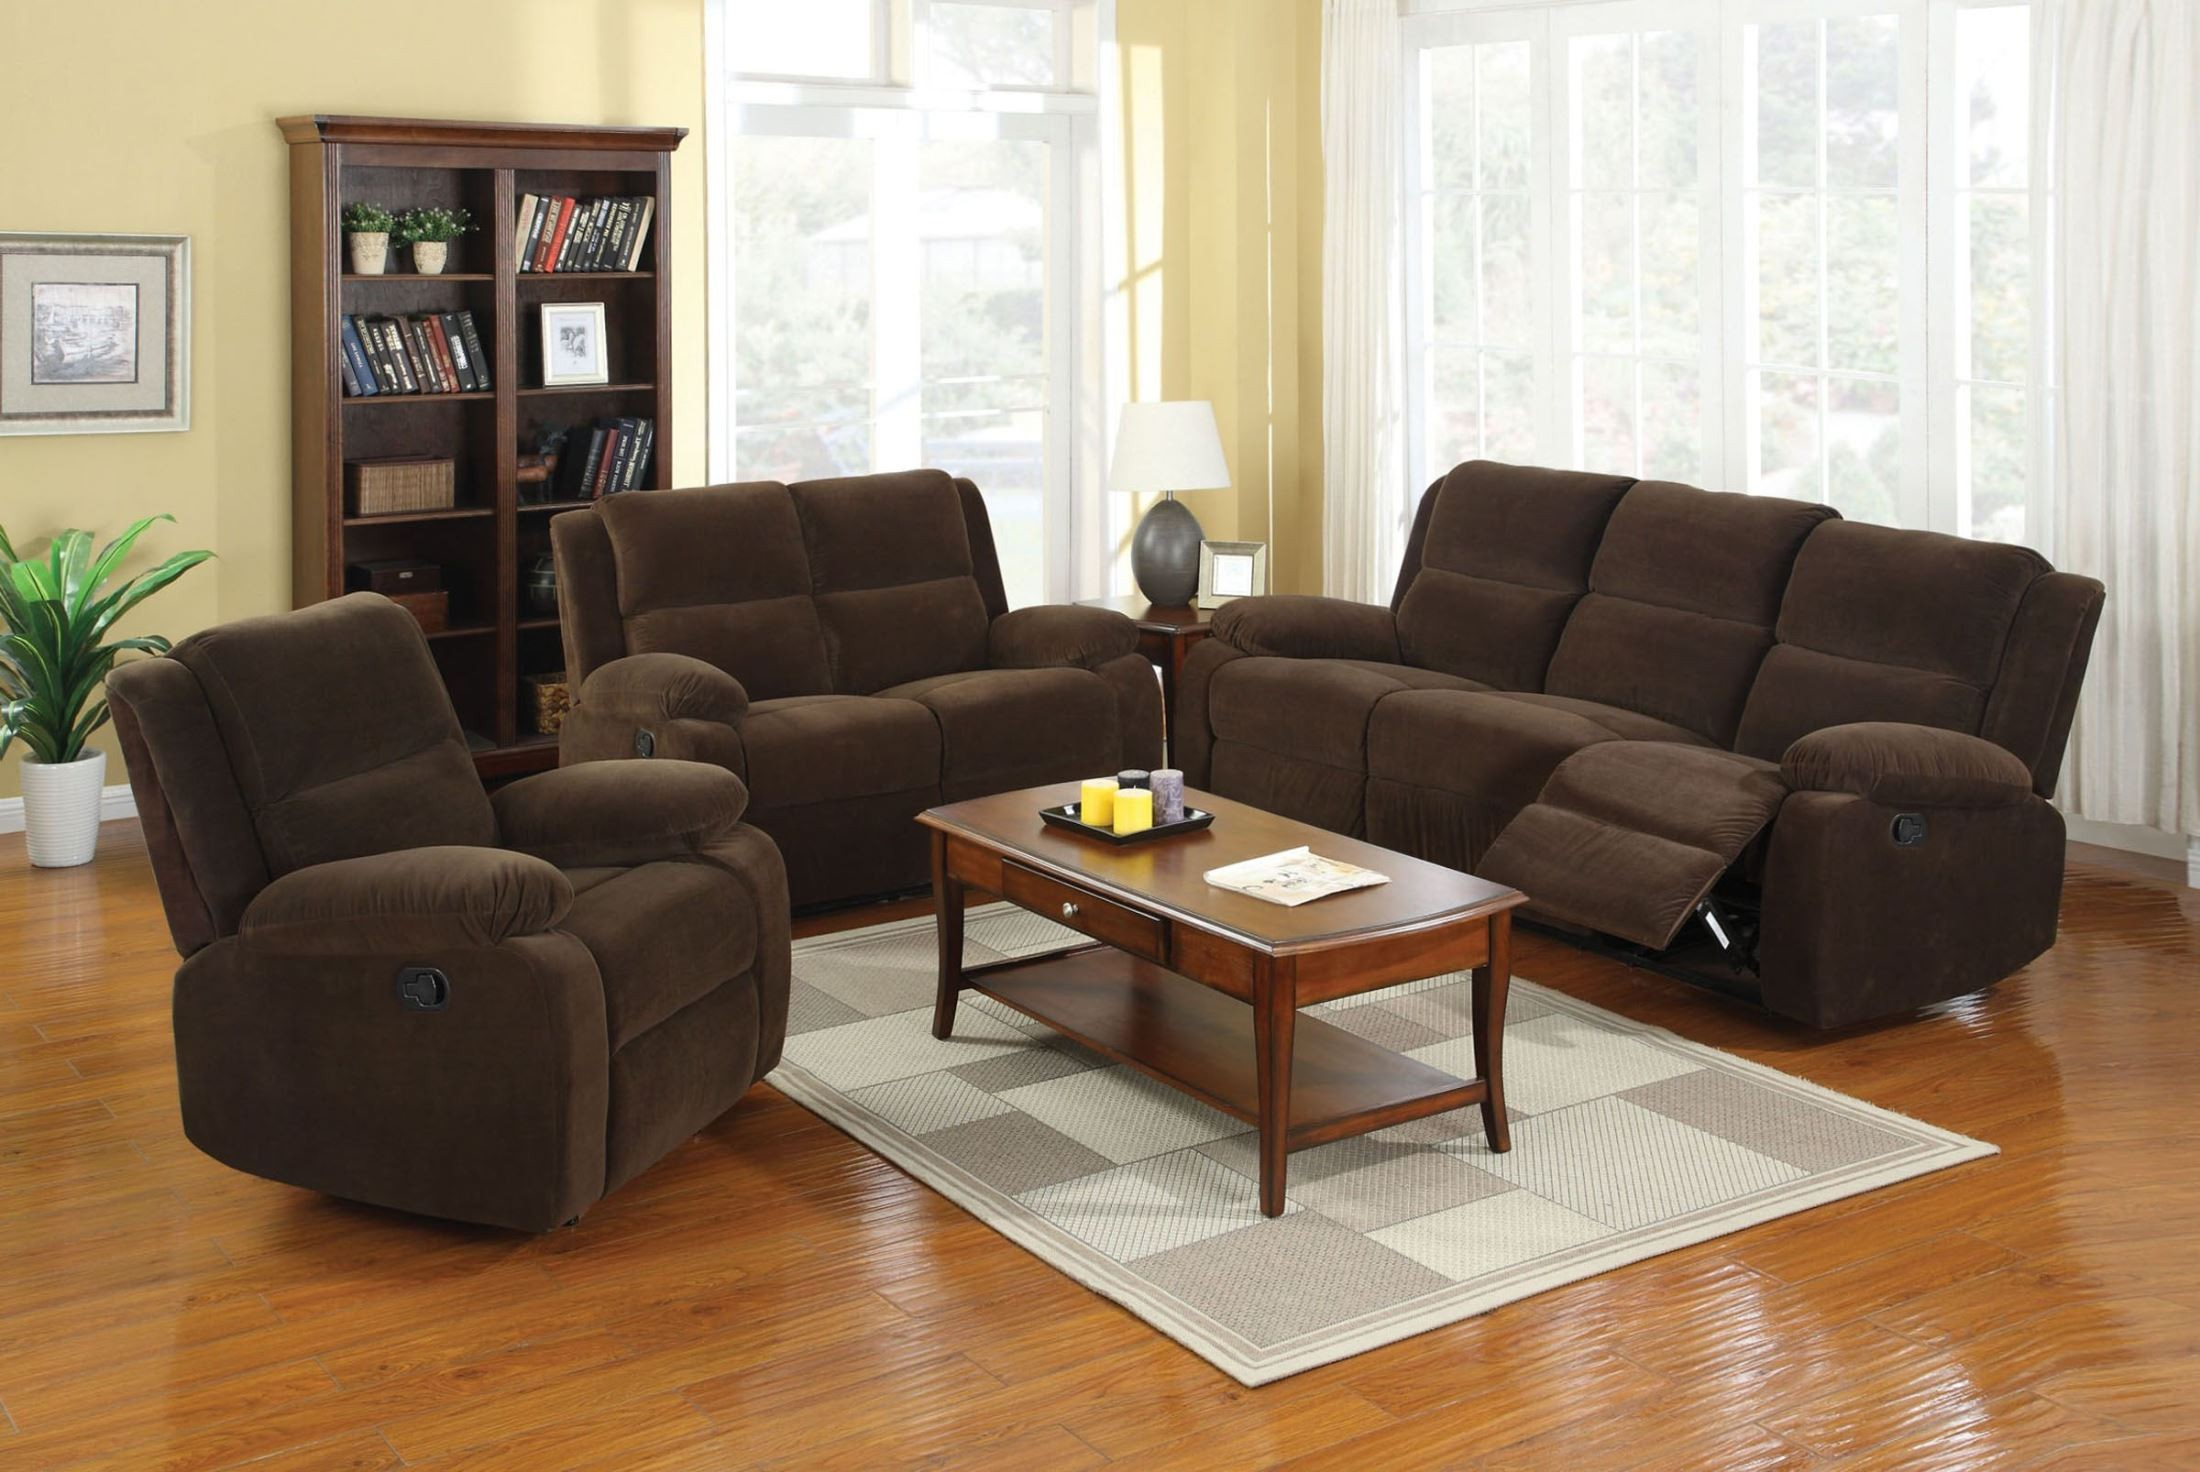 Haven dark brown flannelette reclining living room set - Black and brown living room furniture ...